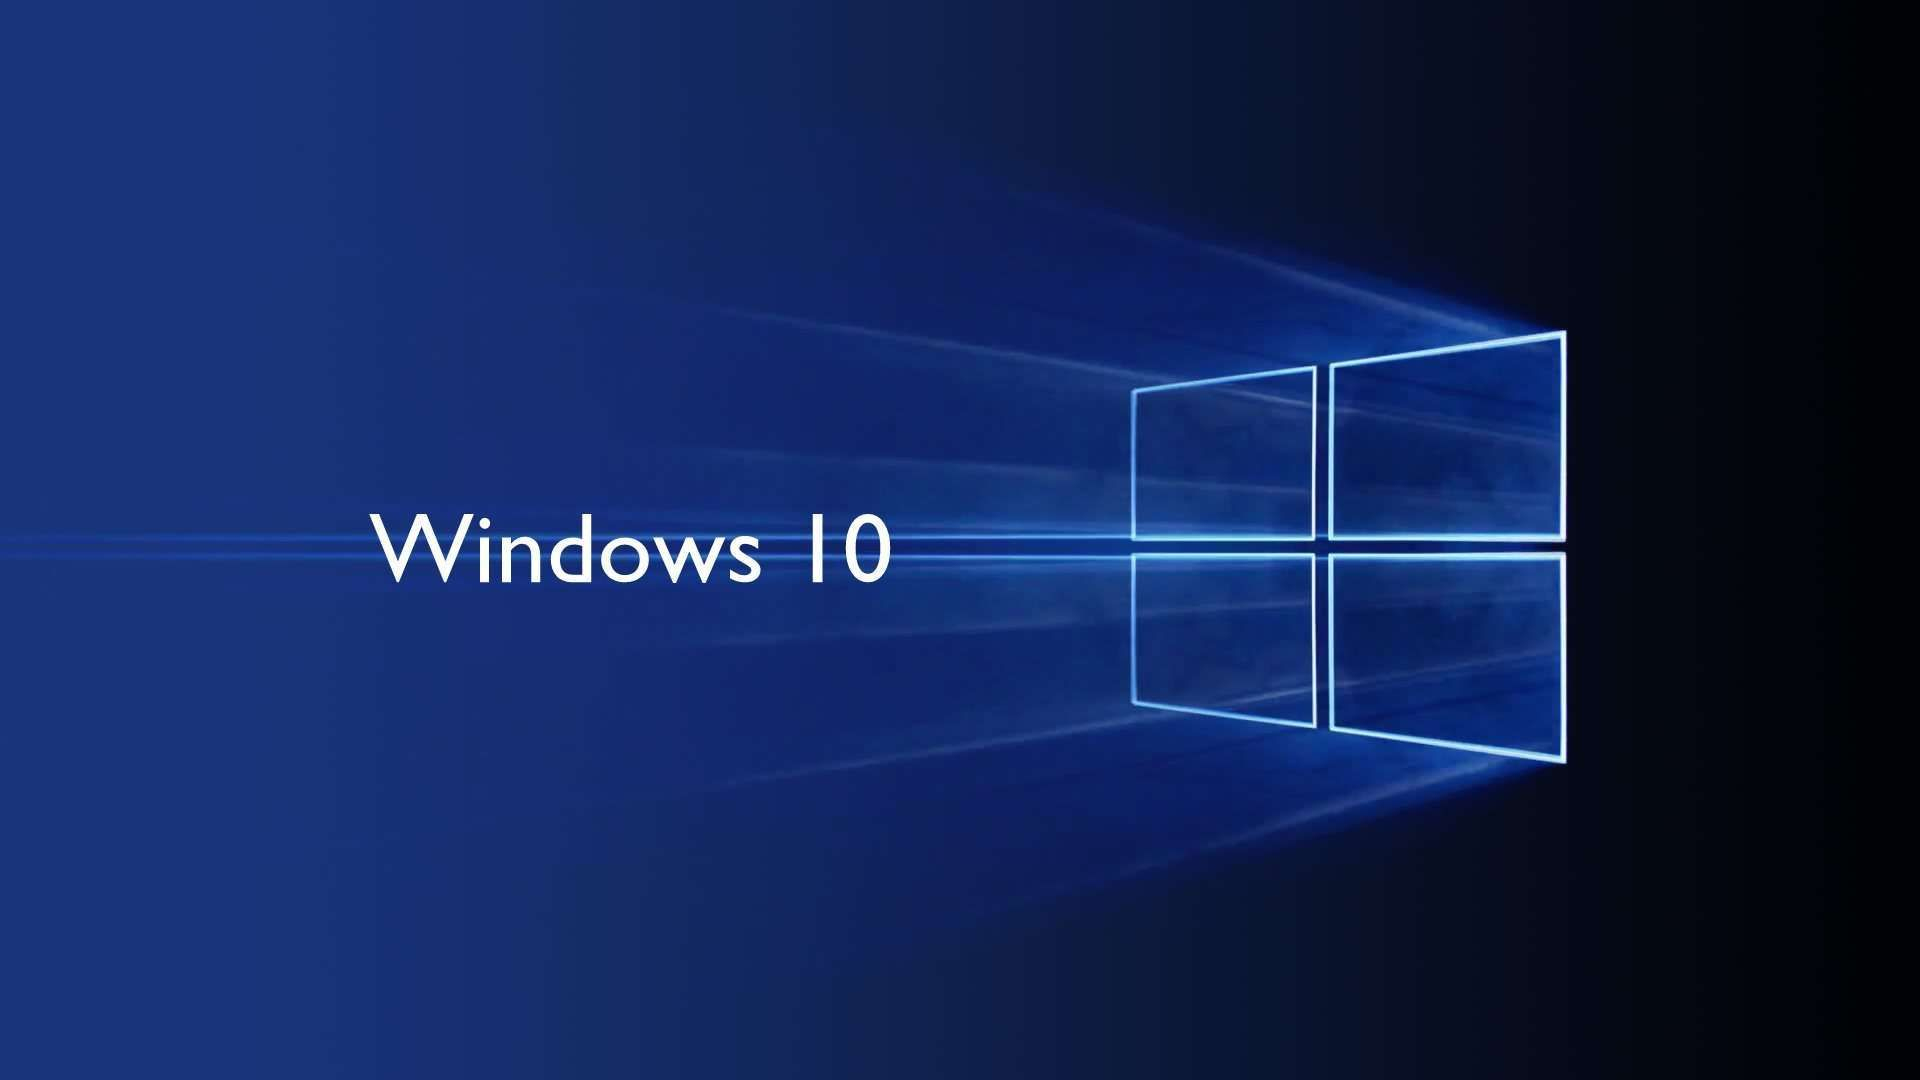 windows 10 hd desktop 1080p